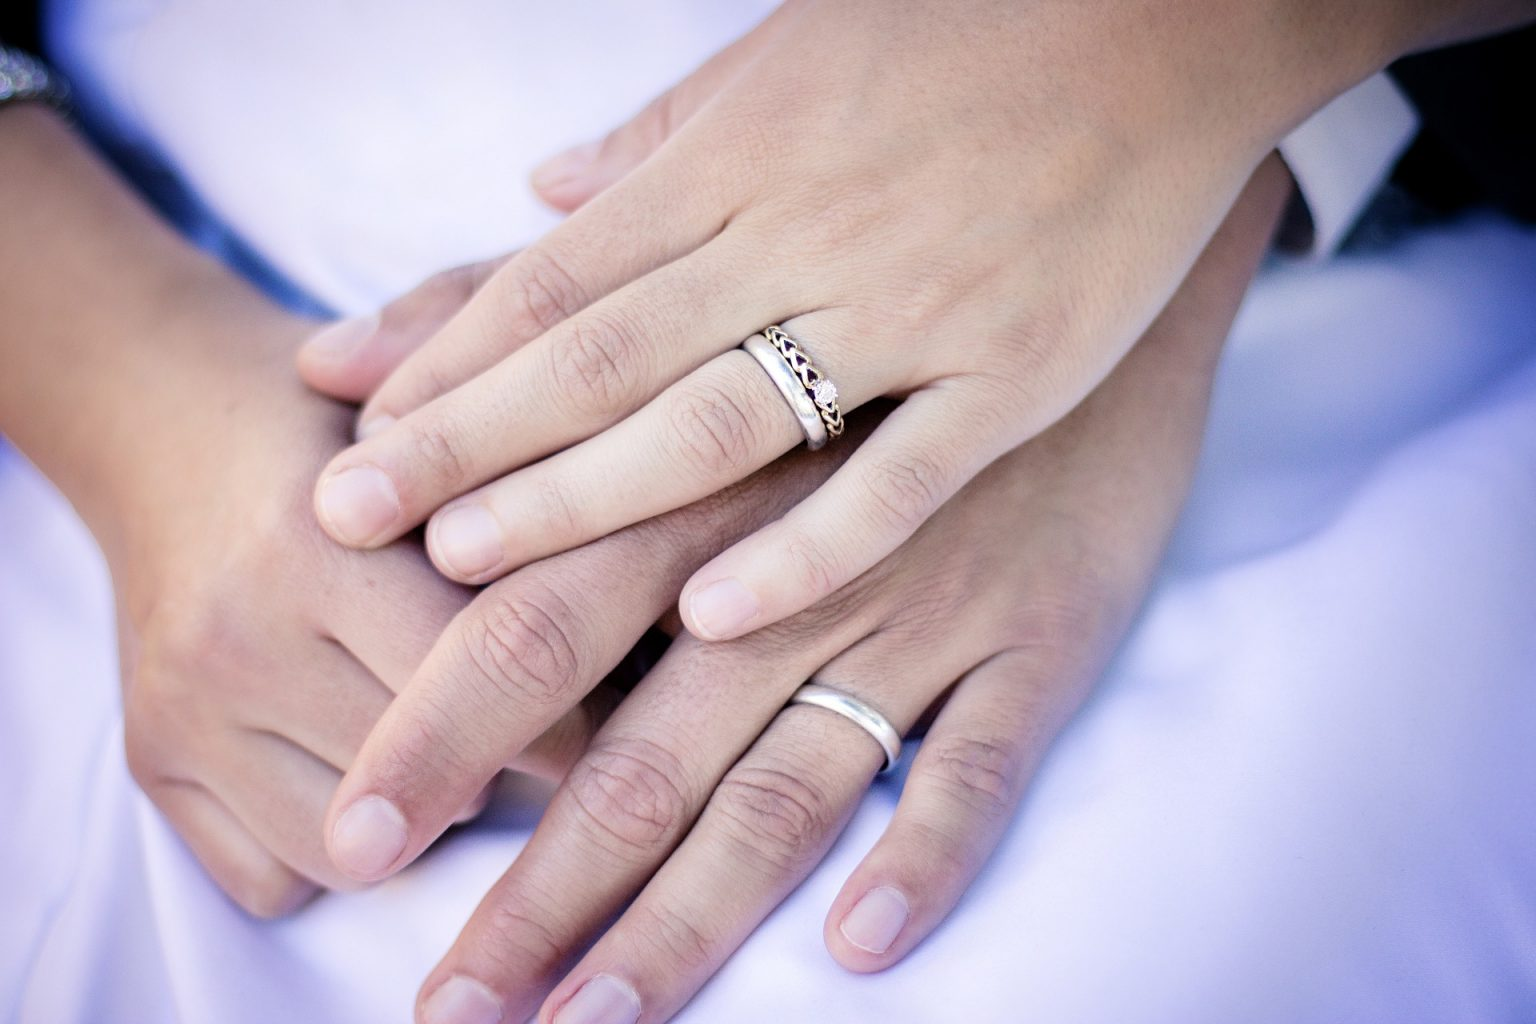 ENGAGEMENT RINGS 101: THE DOS AND DON'TS OF ENGAGEMENT RING CARE